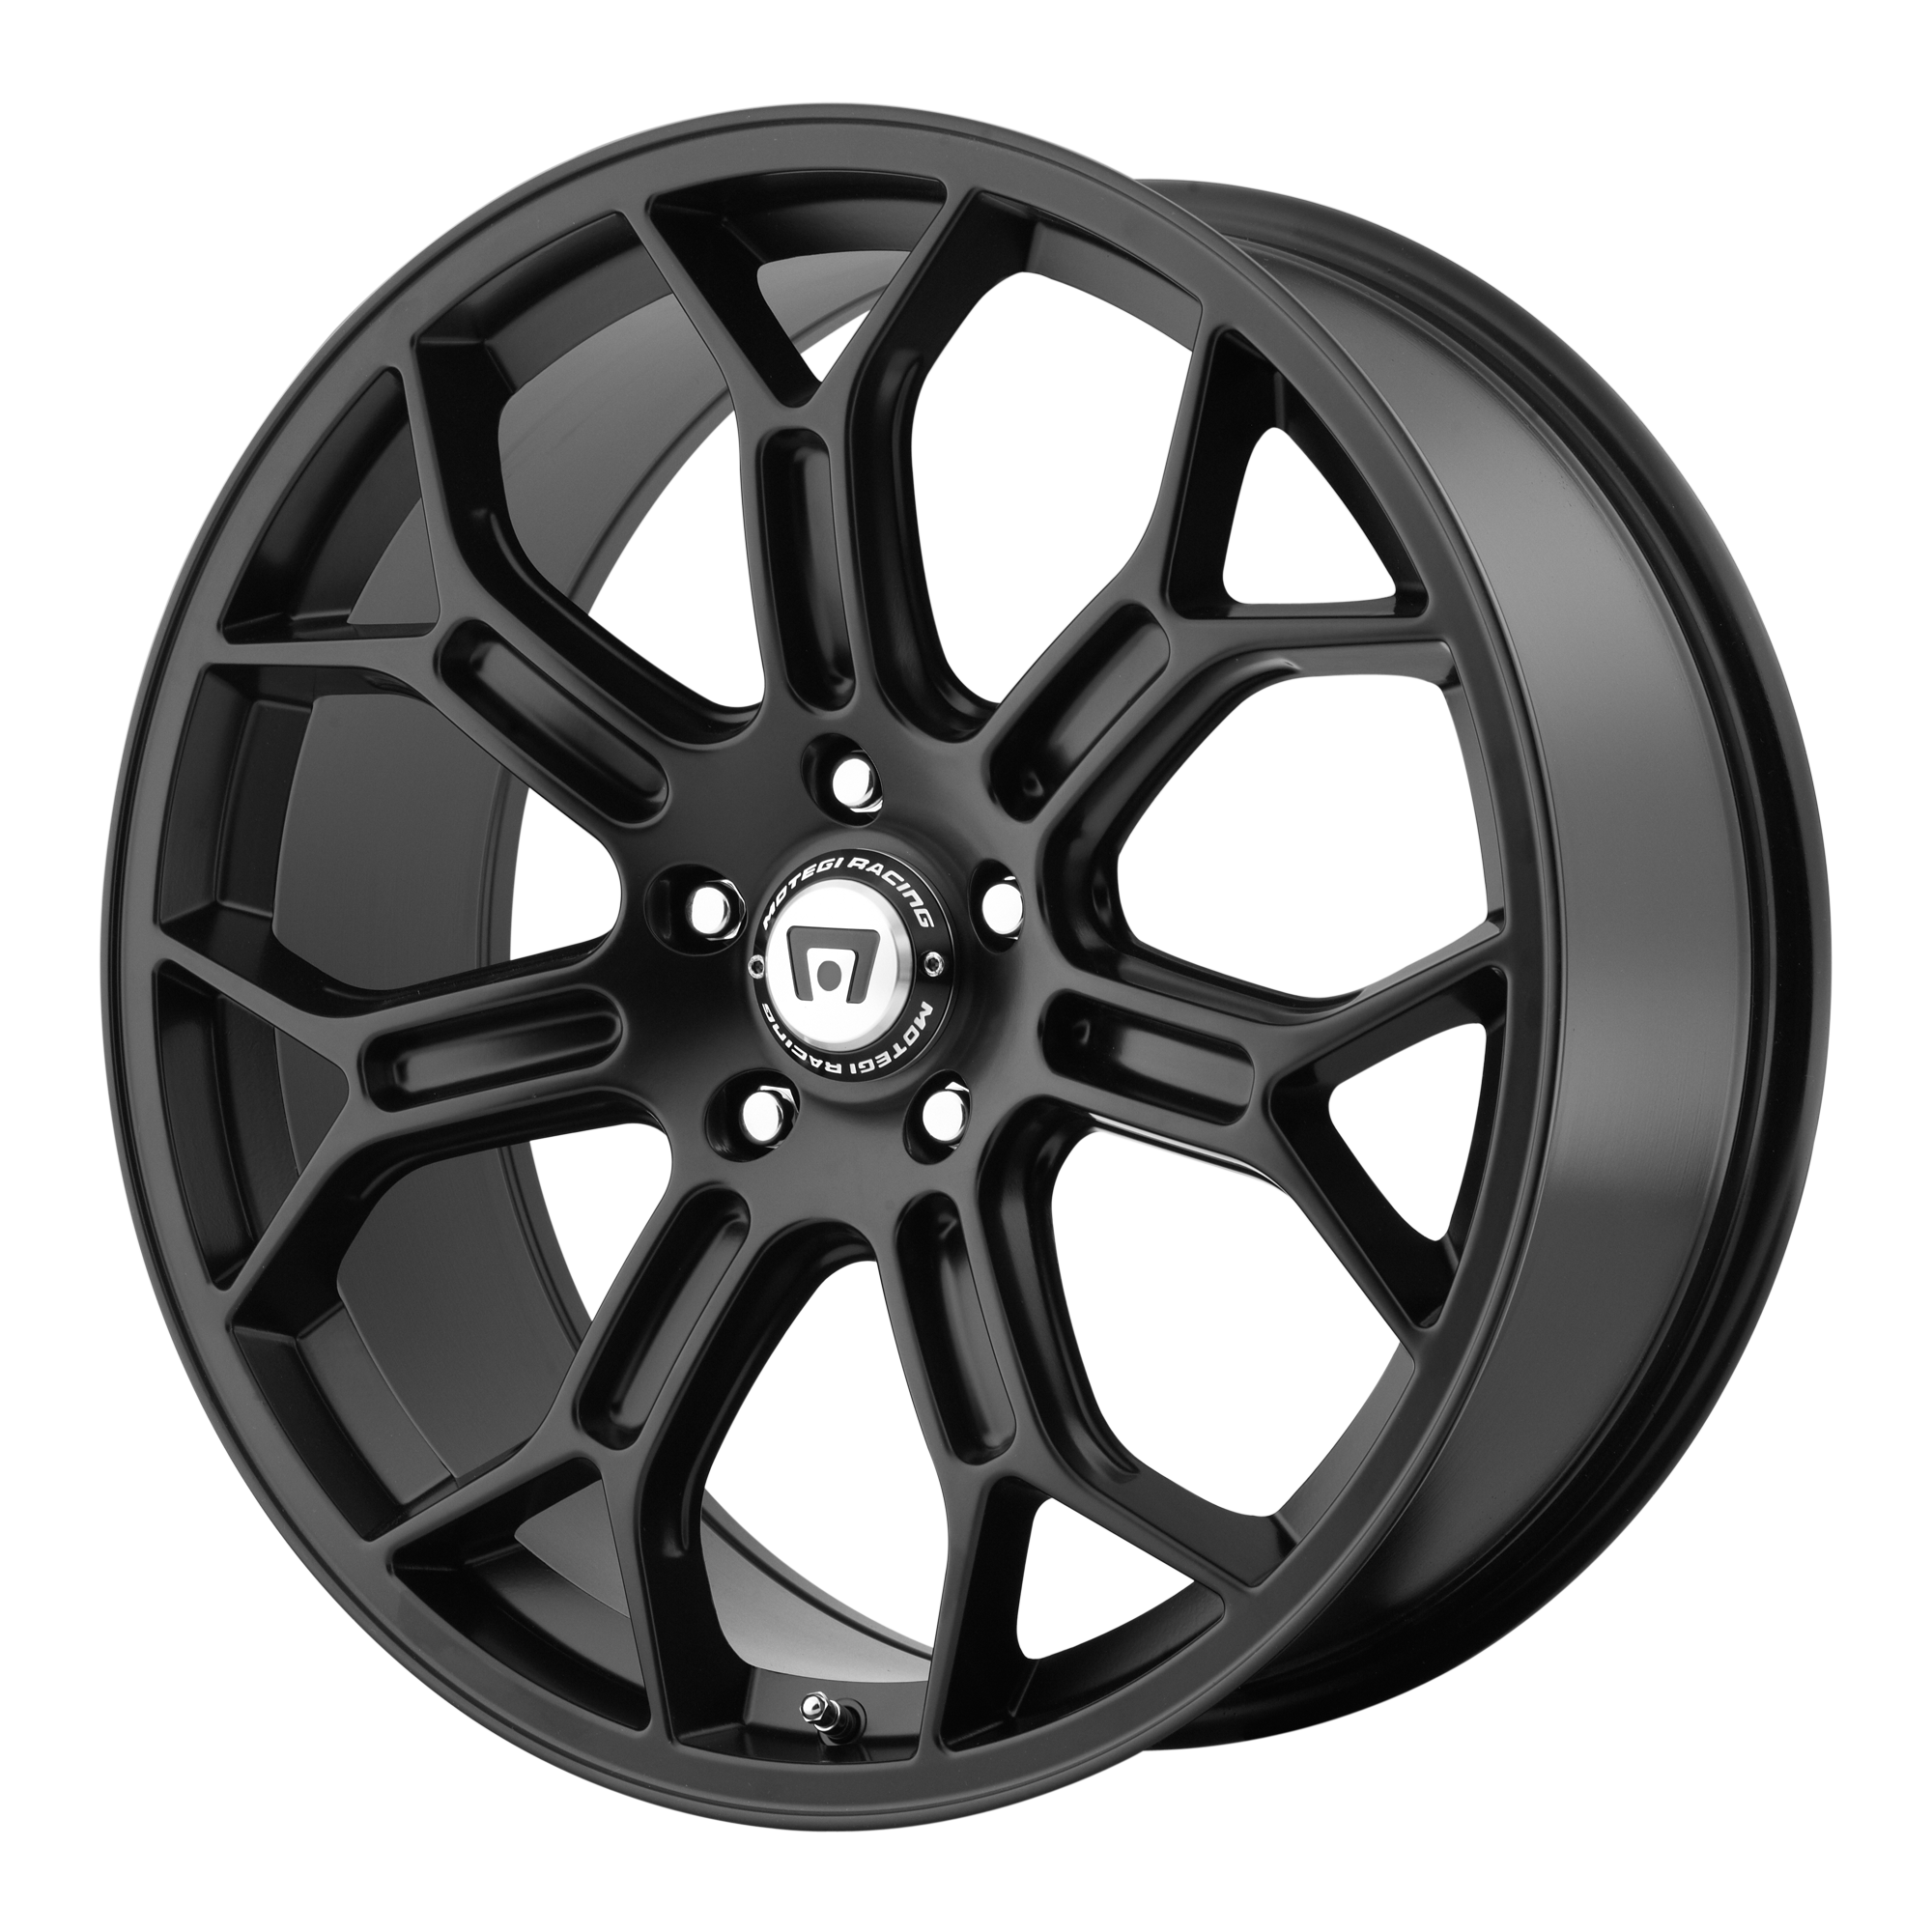 Motegi Racing Wheels TECHNO MESH S Satin Black